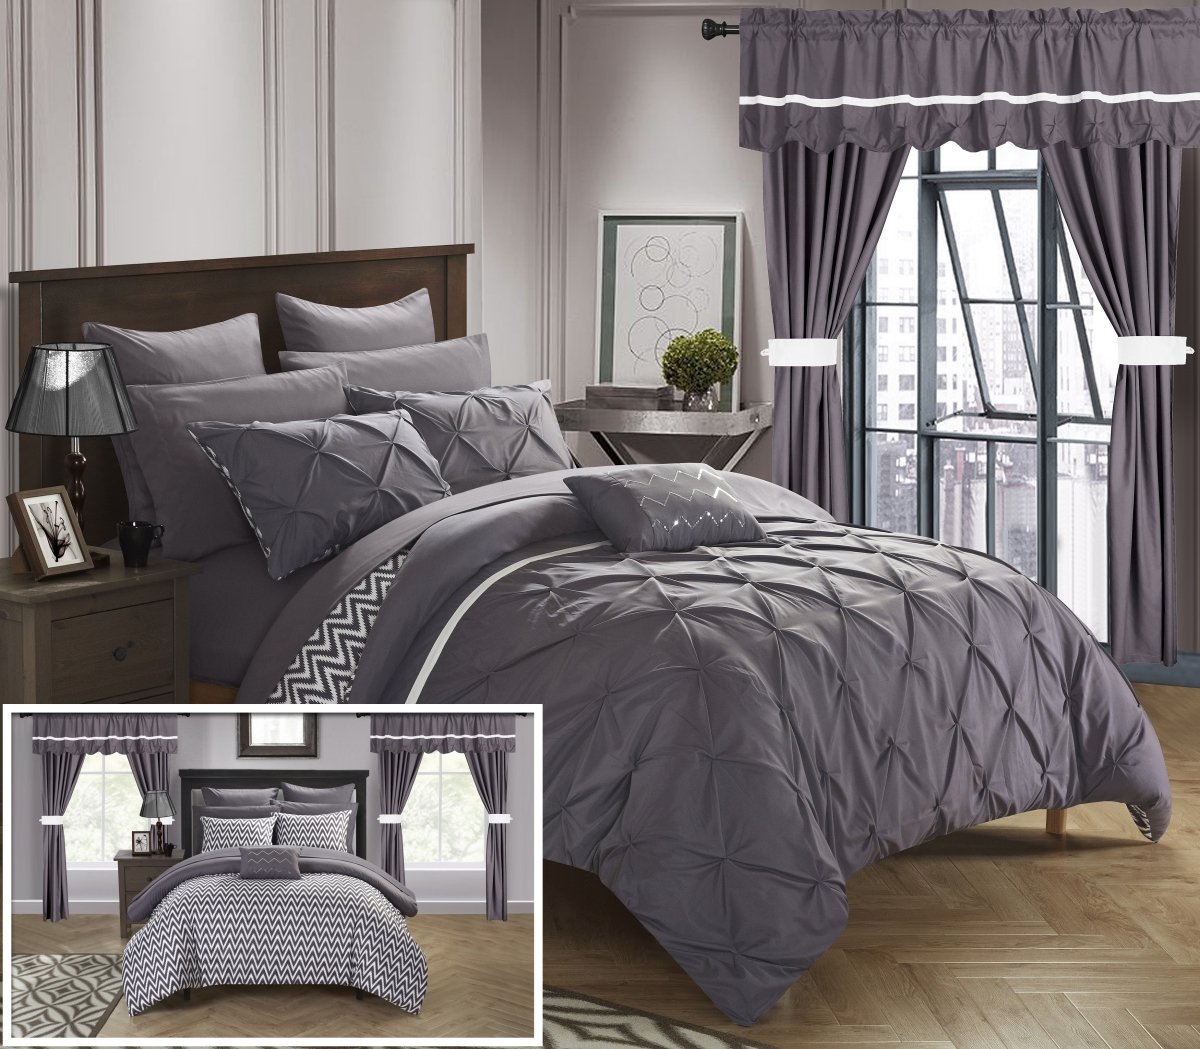 Perfect Home 20 Piece Nashville Complete Bed room in abag Comforter Set,Sheets Set,window treatments include King Plum